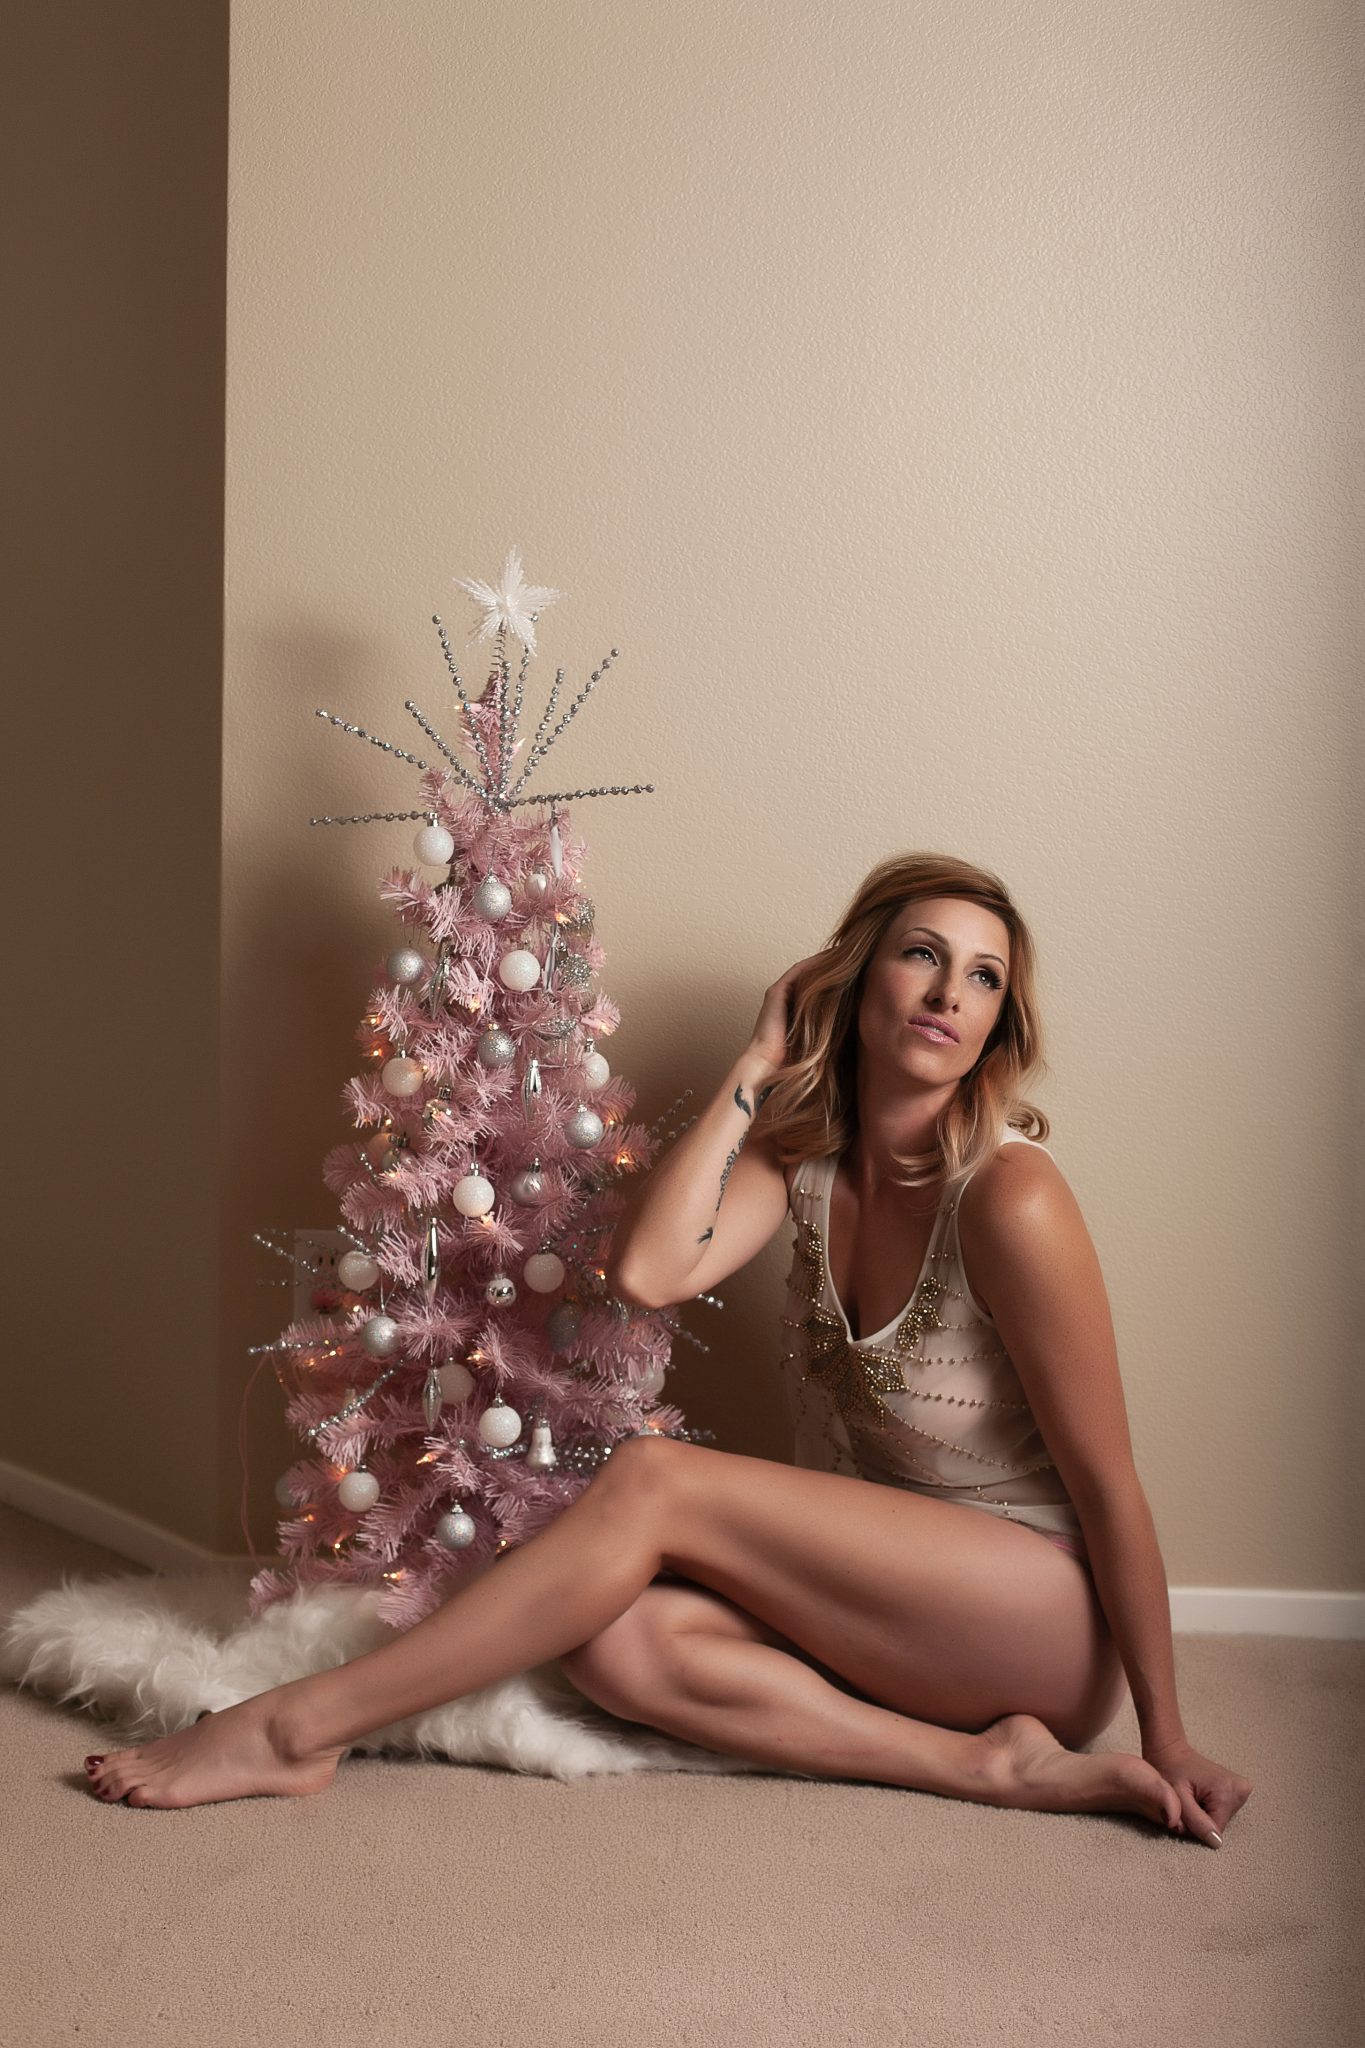 pretty pink christmas tree in this boudoir photo.